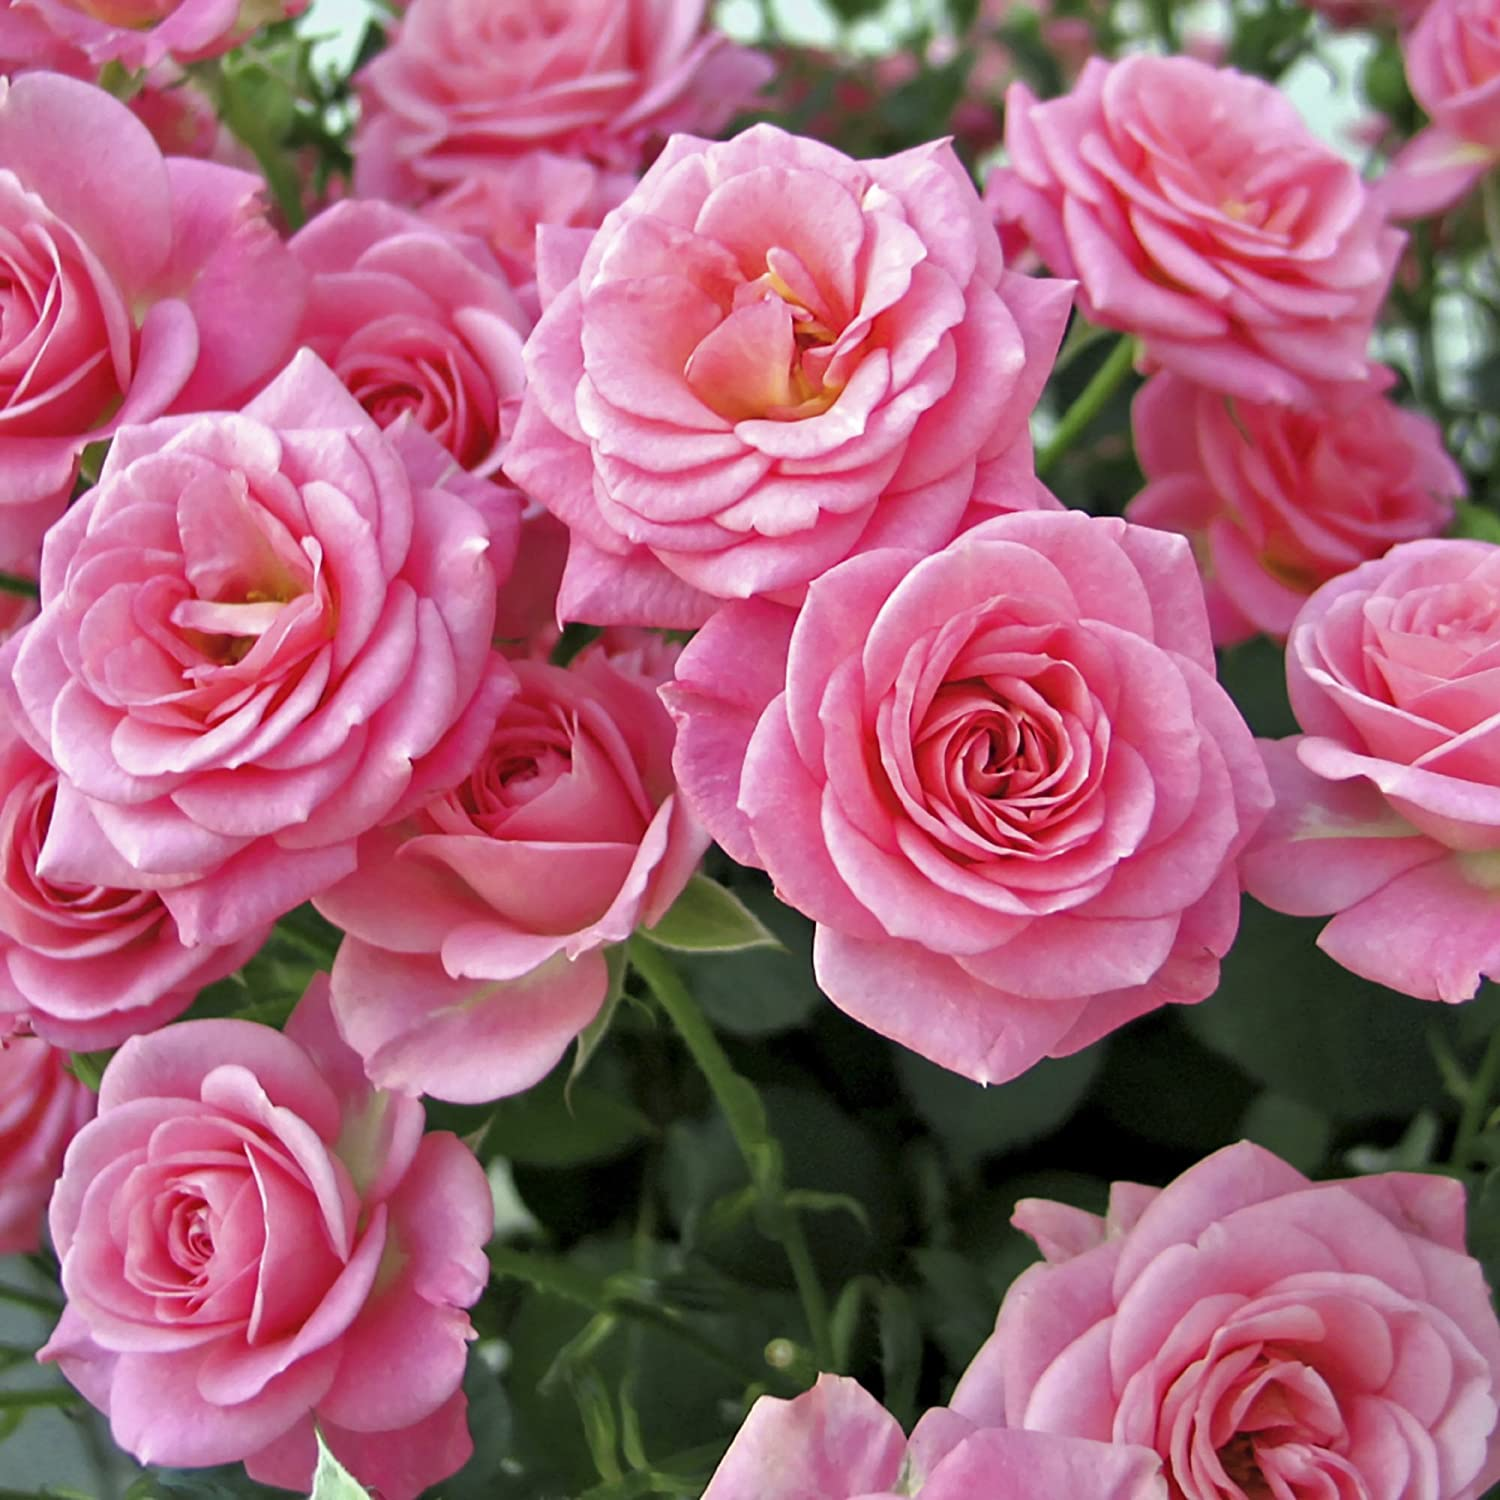 The 39 garden glamour 39 repeat flowering rose collection 5 varieties ebay - Rose cultivars garden ...